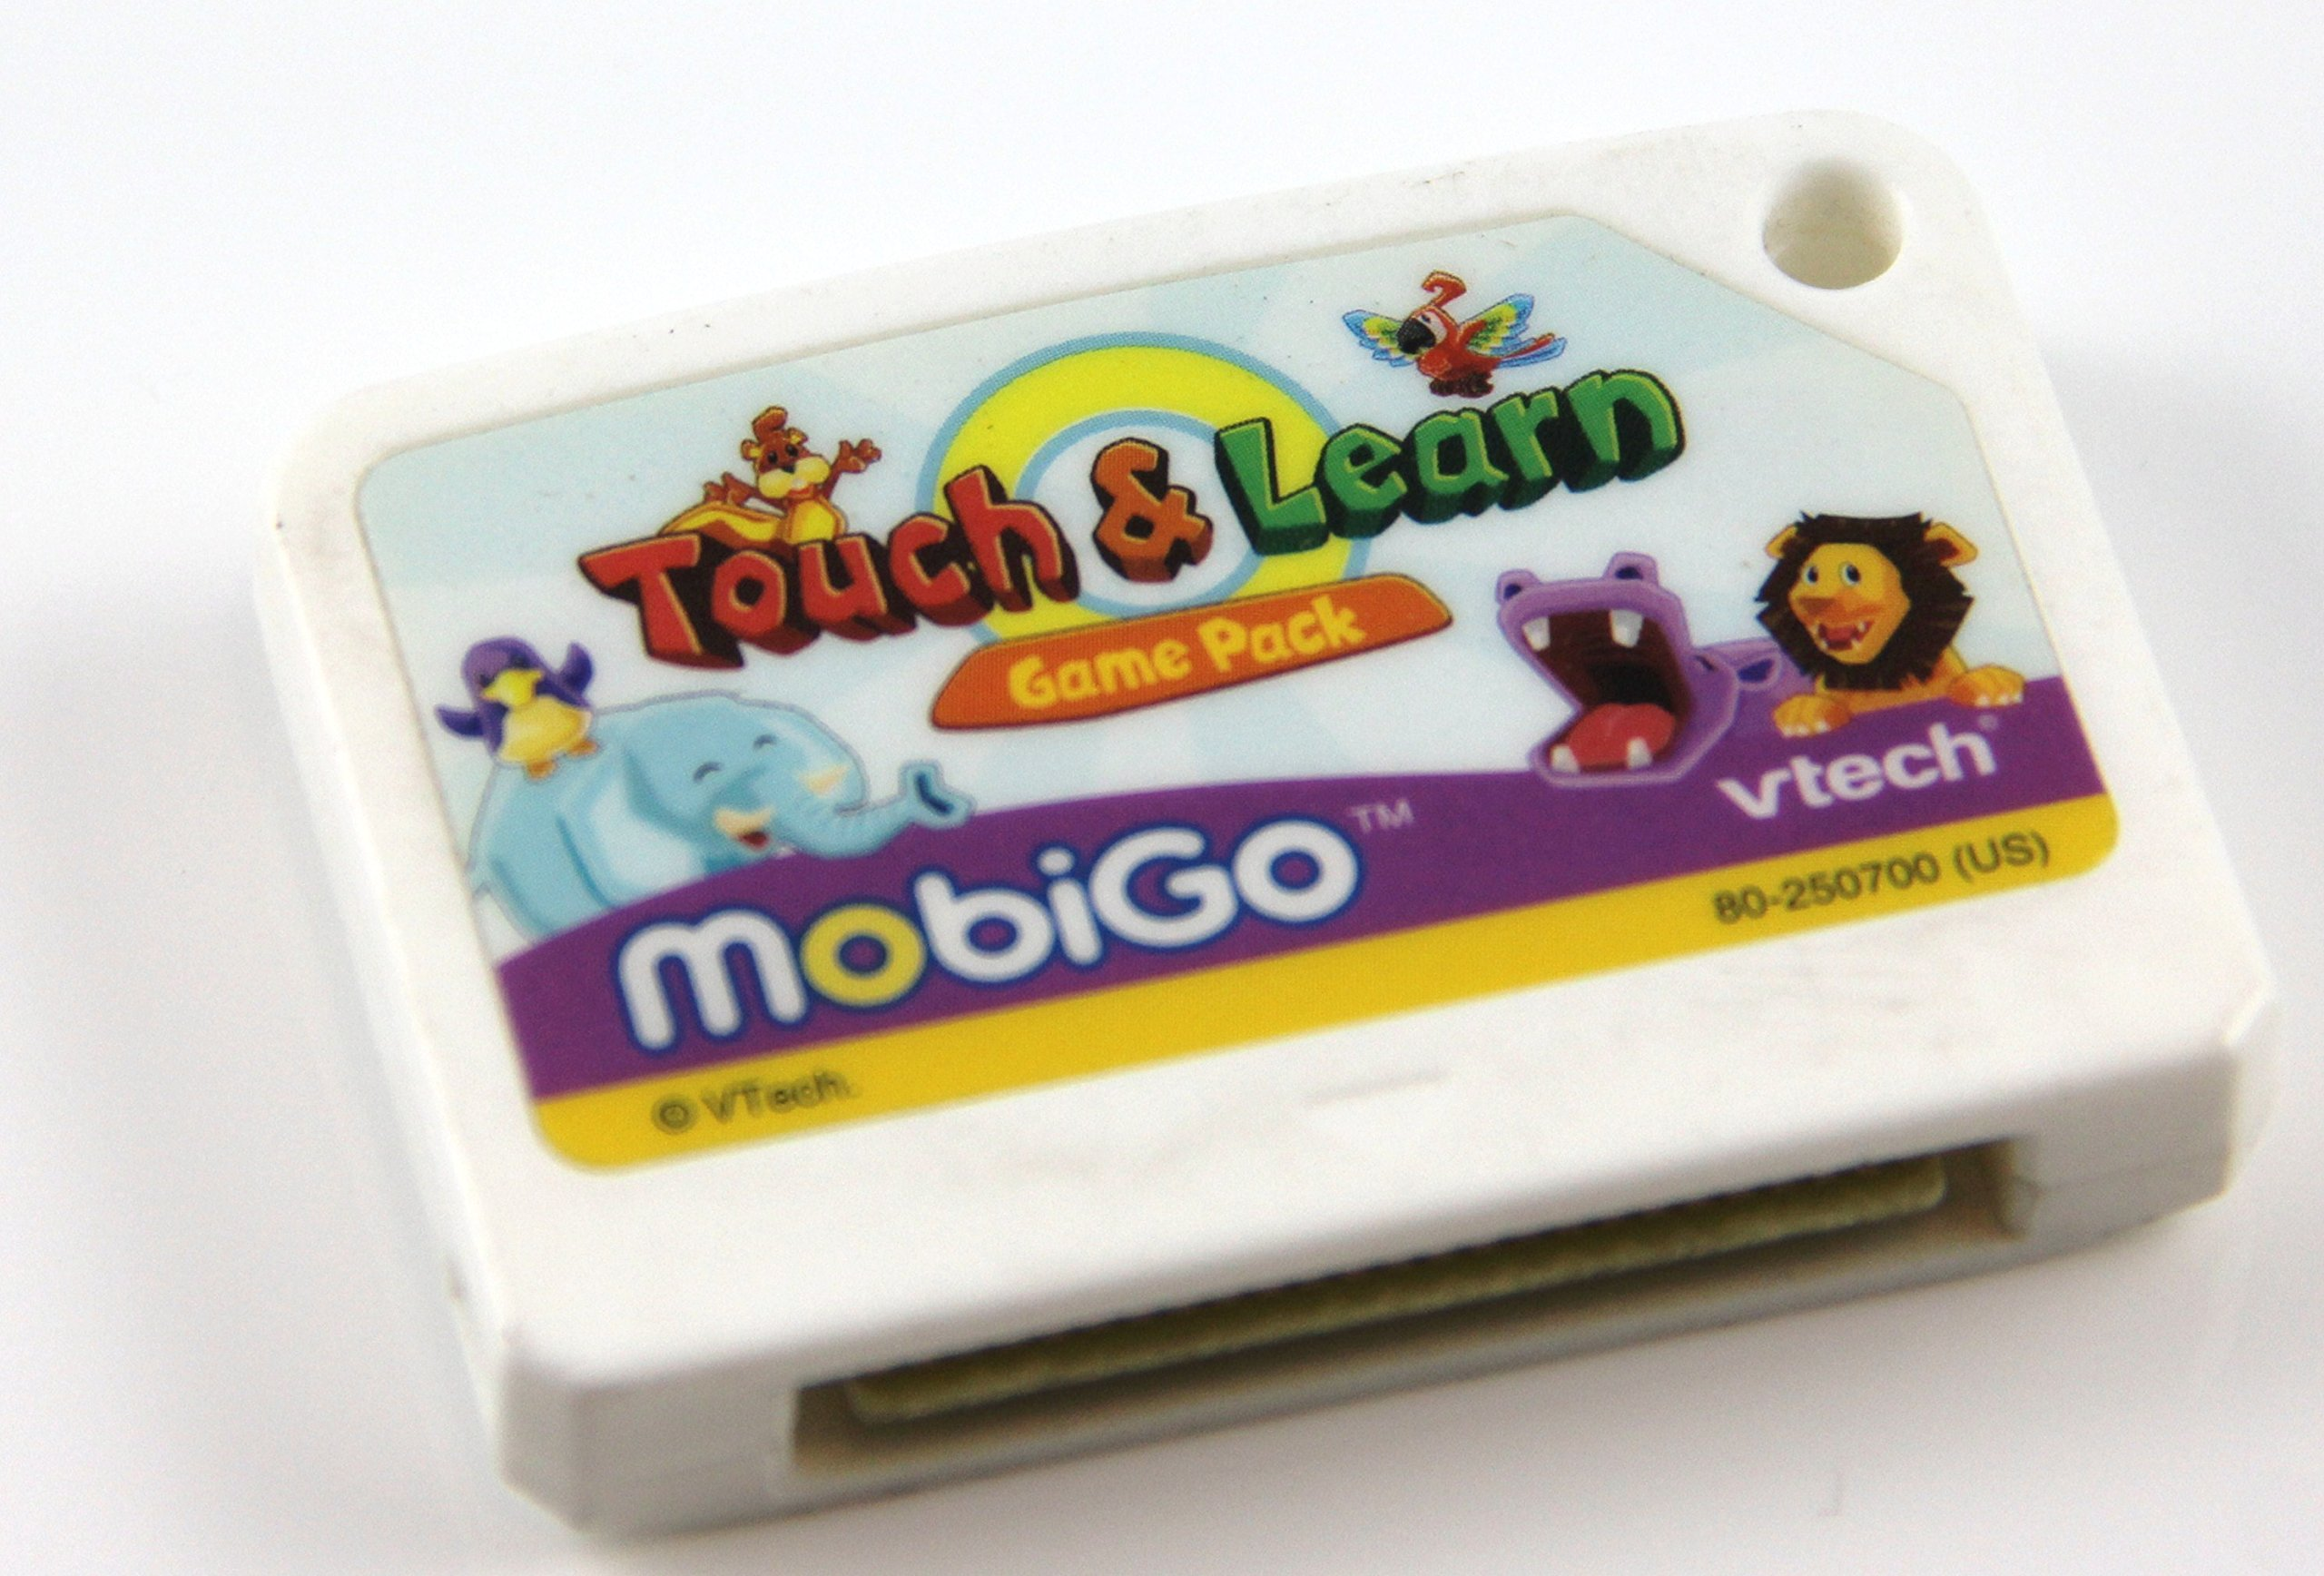 VTech MobiGo Touch Learning System - Replacement Touch & Learn Game Pack by VTech (Image #1)